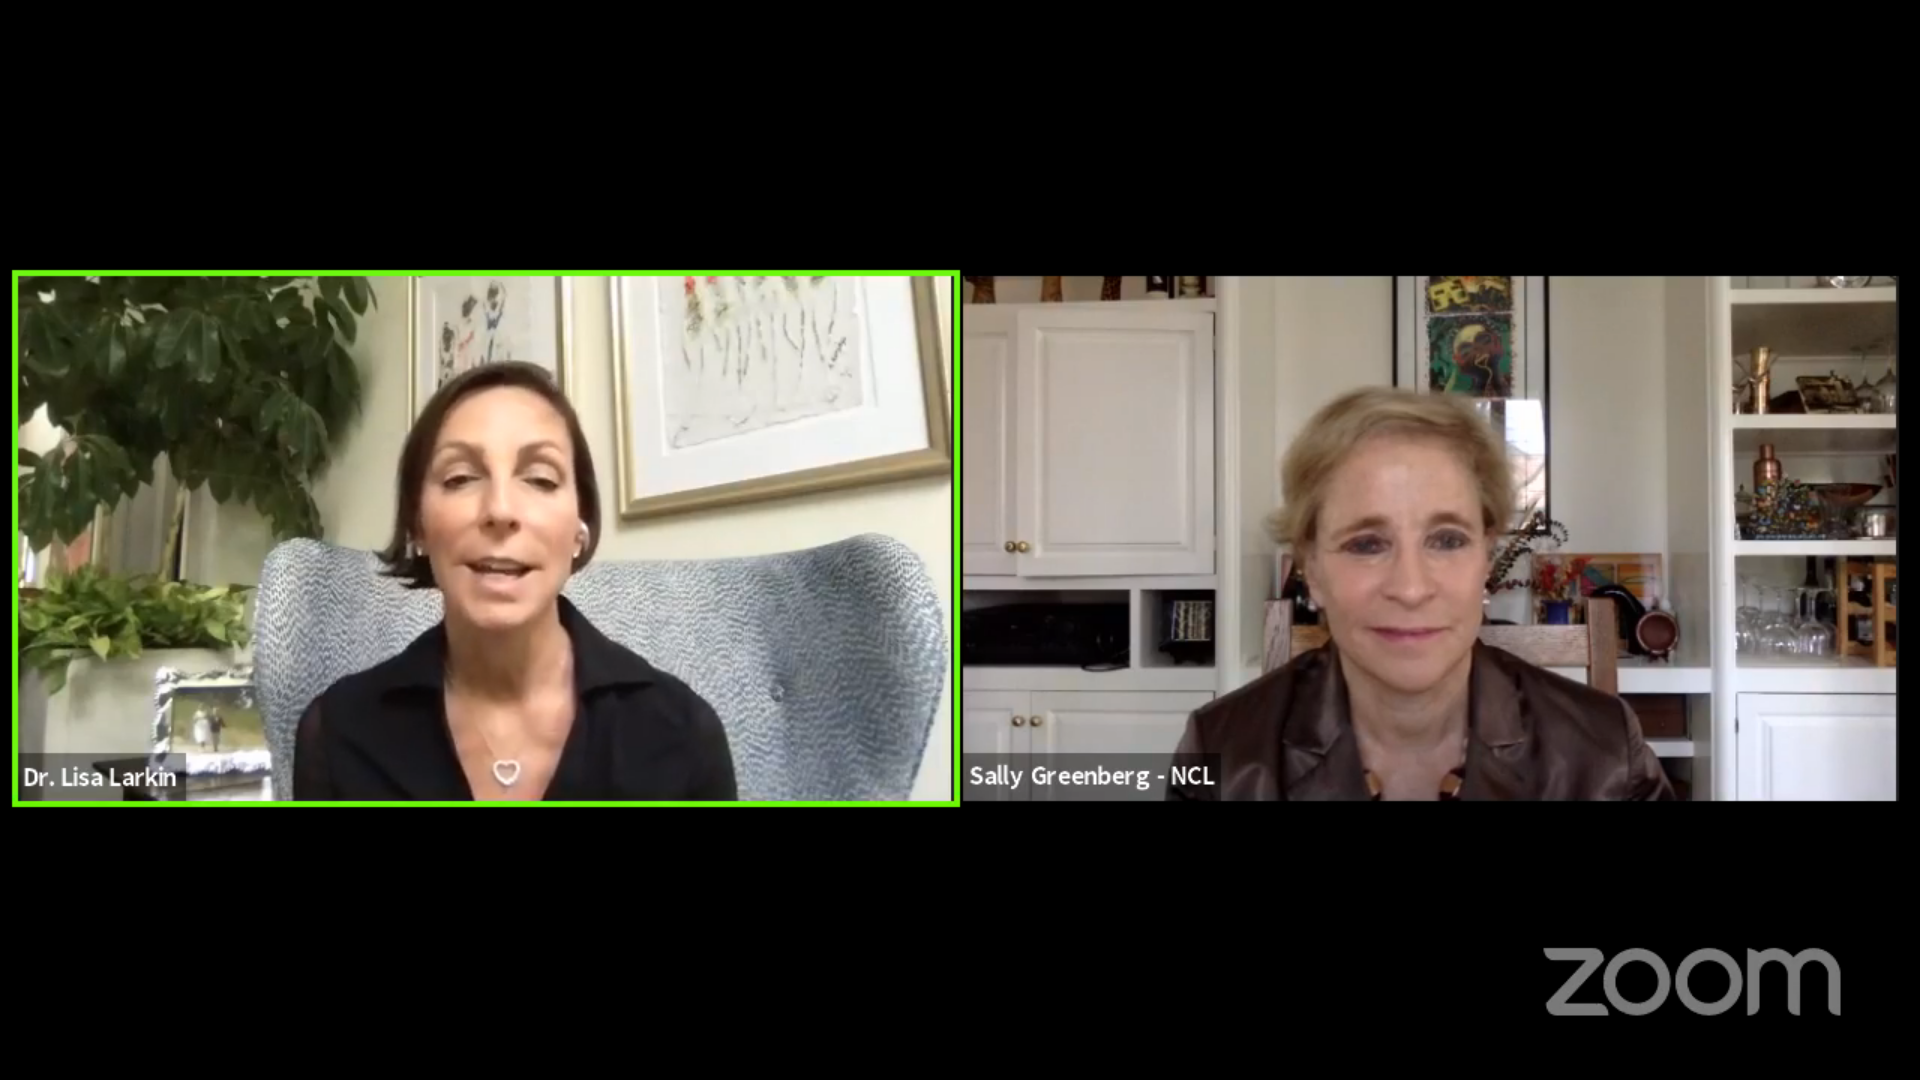 Facebook live chat about COVID testing with NCL and Dr. Lisa Larkin